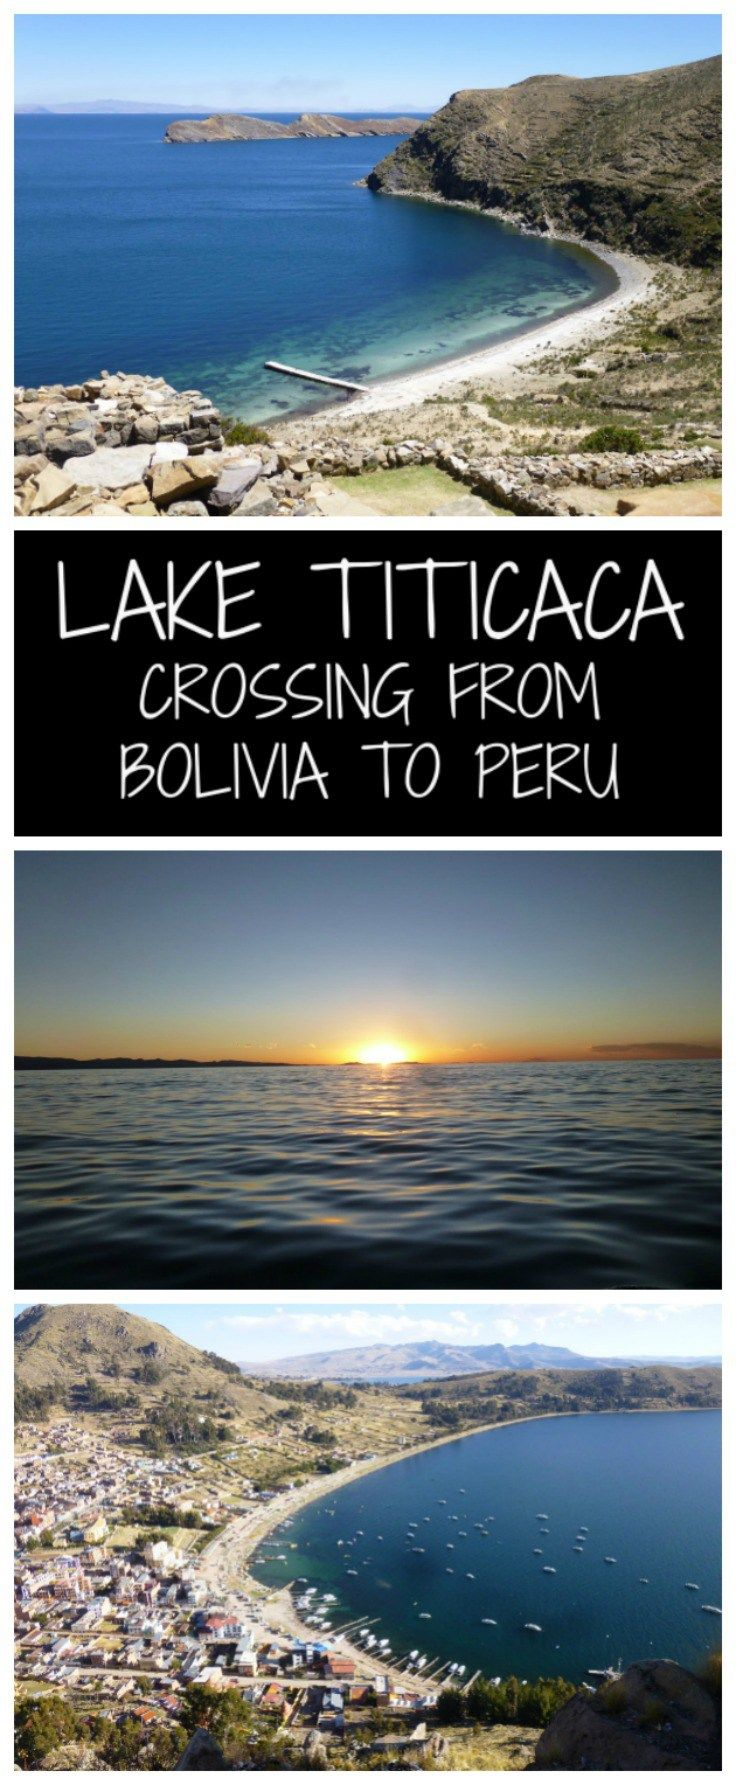 Lake Titicac Crossing from Peru to Bolivia